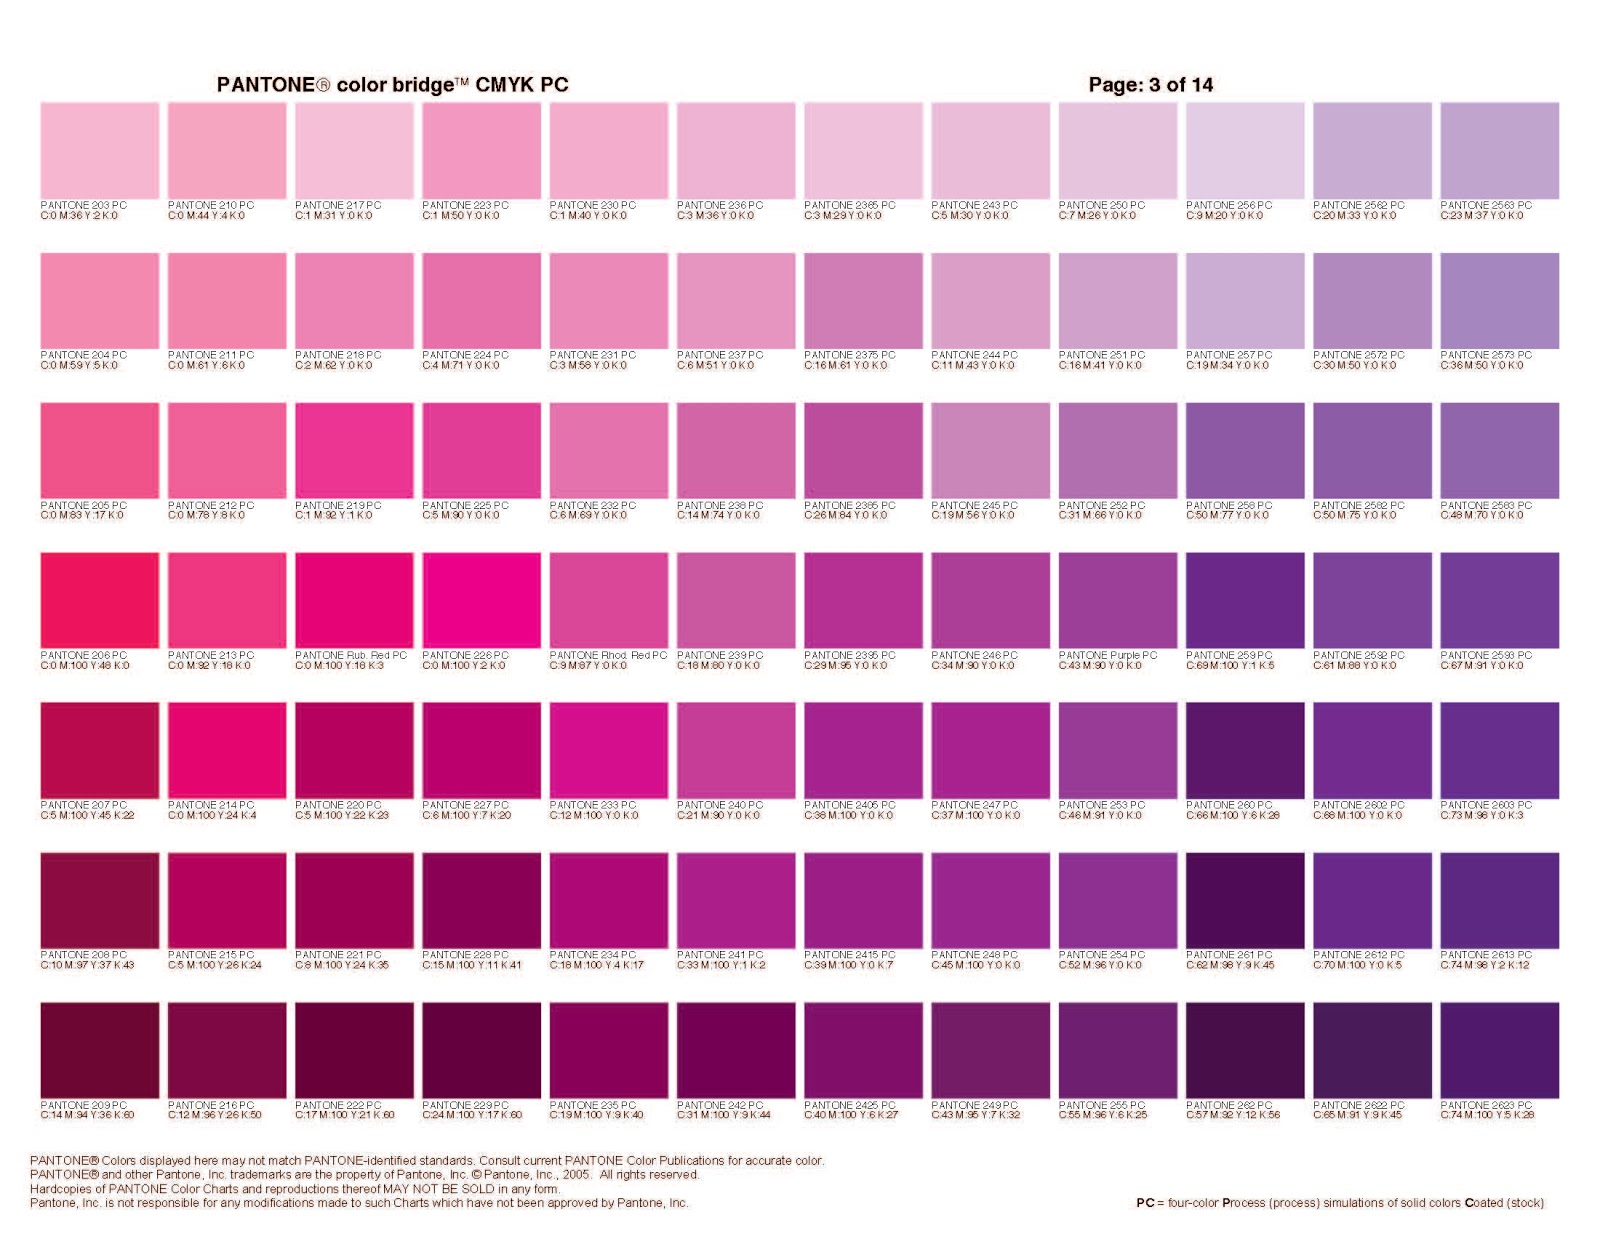 PURPLE PANTONE COLORS